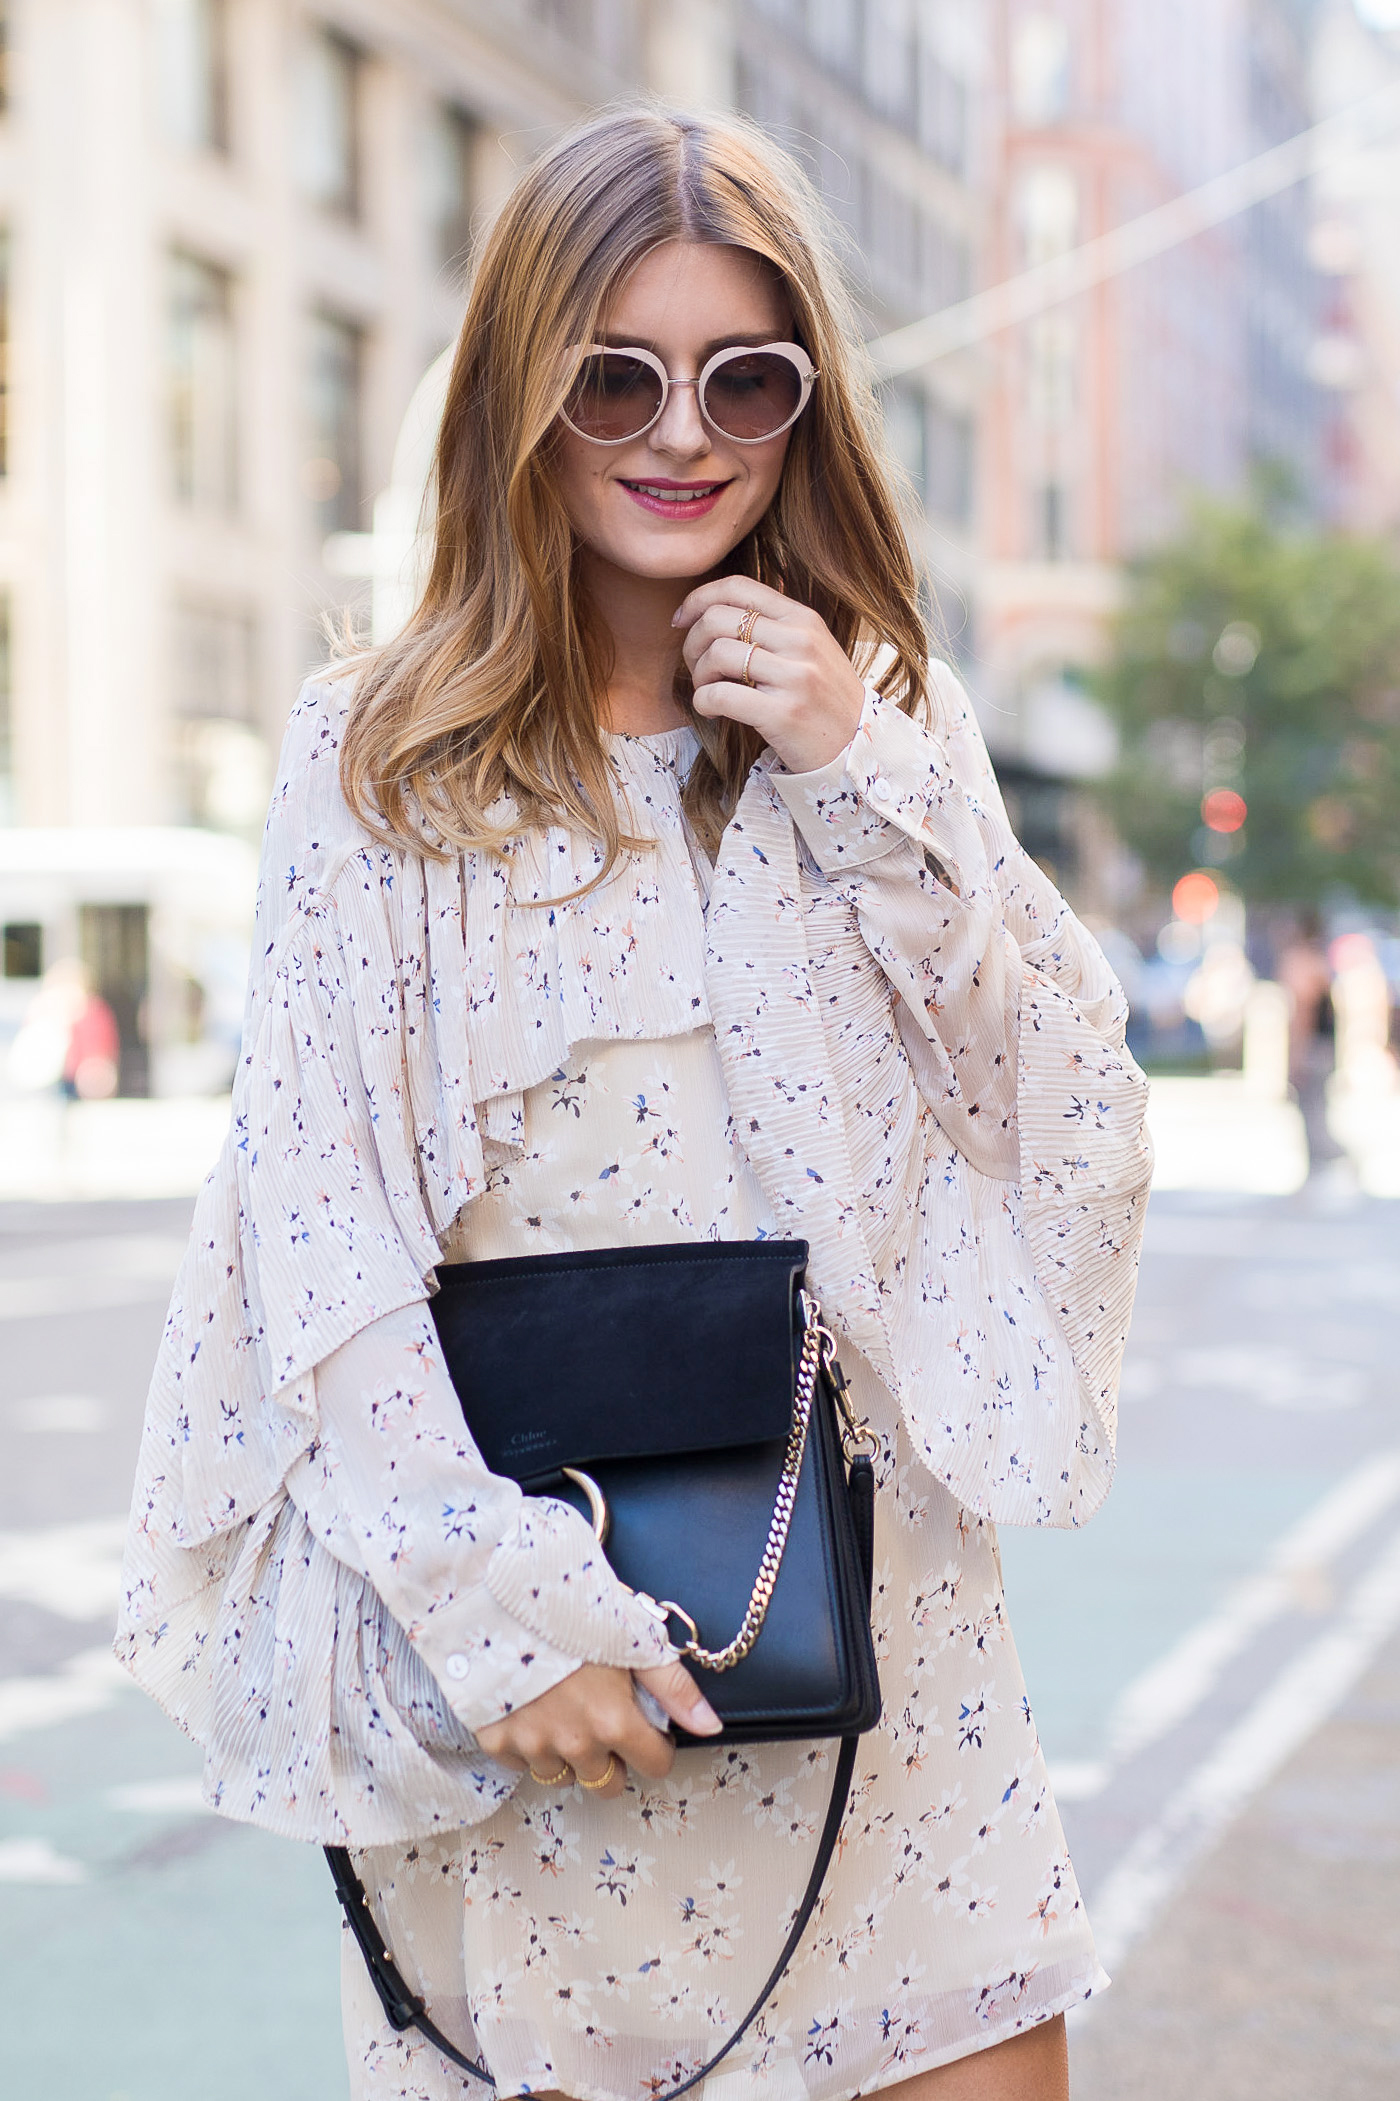 New_York_Broadway_Outfit_Ruffle_Dress_Gucci_Loafers_7